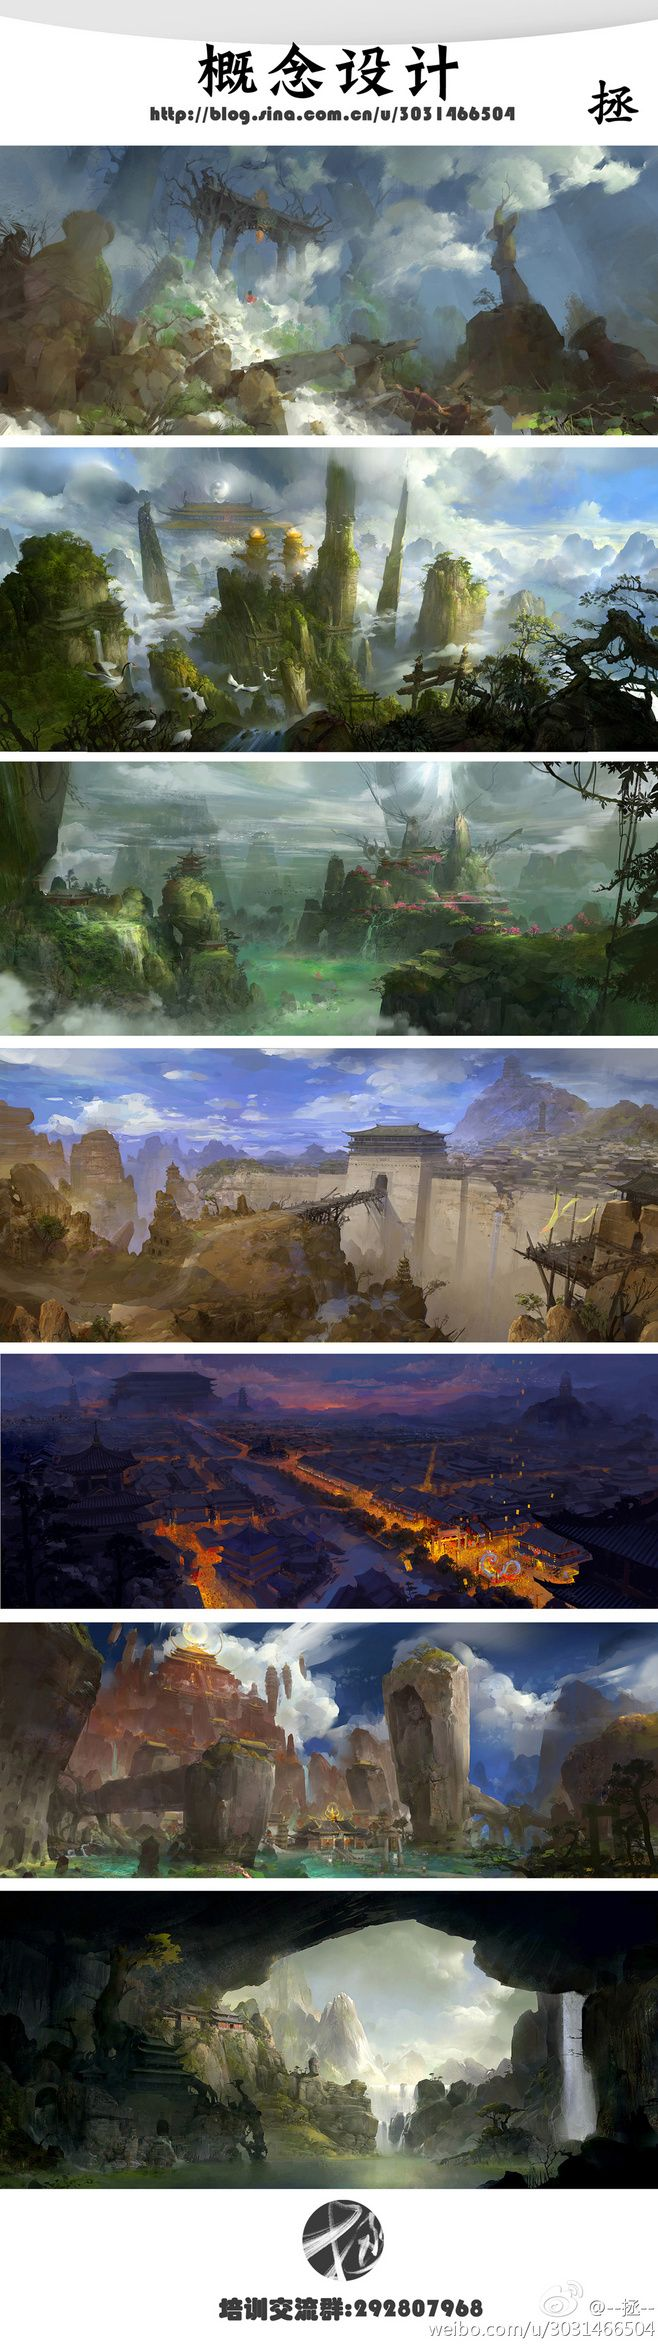 Good jungle/ mountainous art